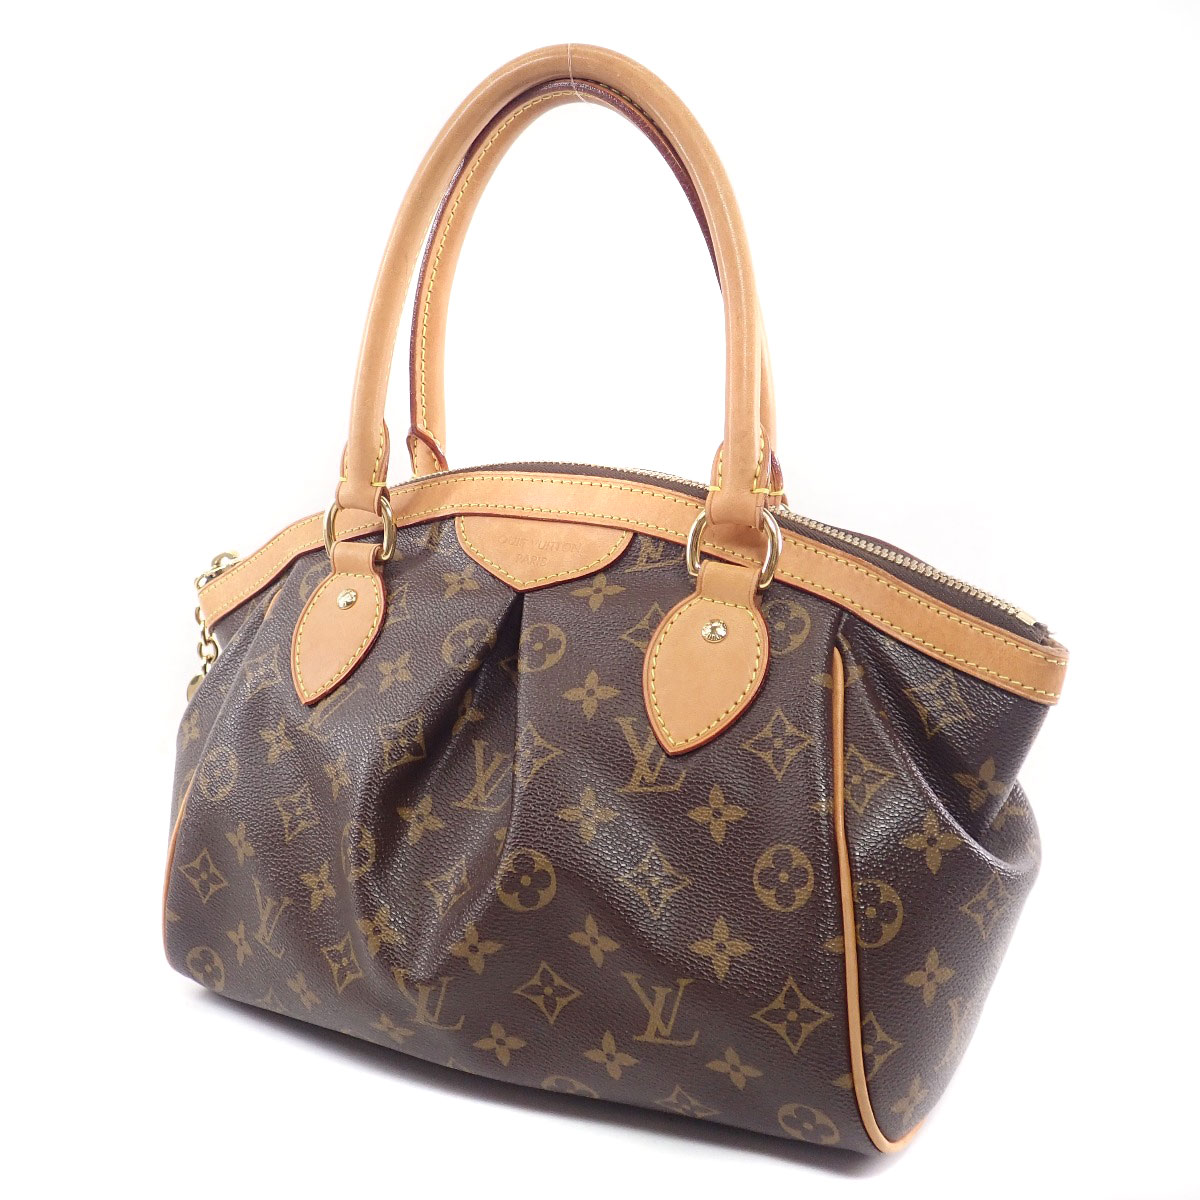 Louis Vuitton Tivoli Pm Brand New Louis Vuitton Louis Vuitton M40143 Monogram Canvas Women S Handbag ー The Best Place To Buy Brand Bags Watches Jewelry Brand Bargain